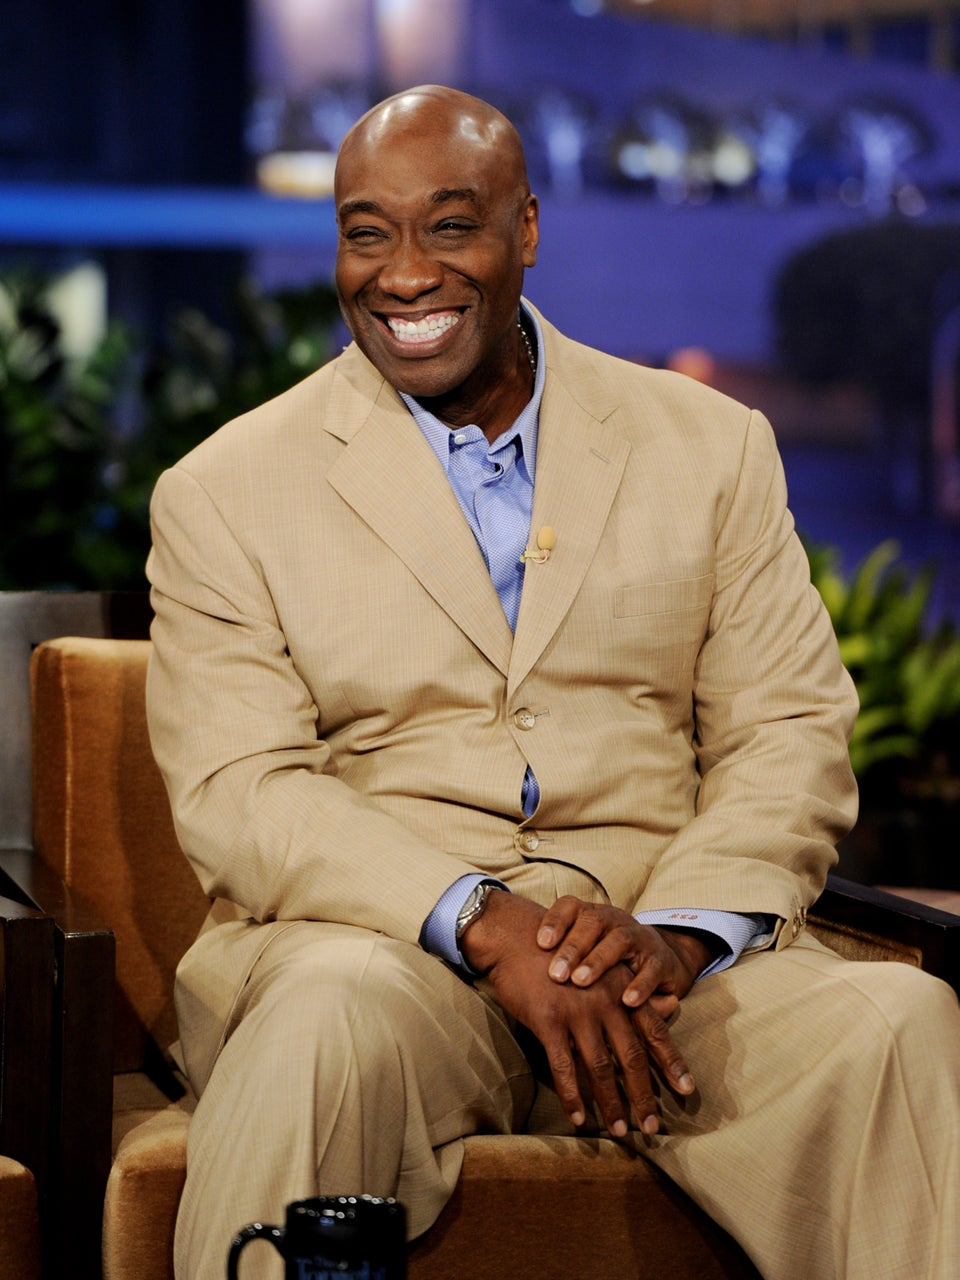 Michael Clarke Duncan Recovering from Cardiac Arrest